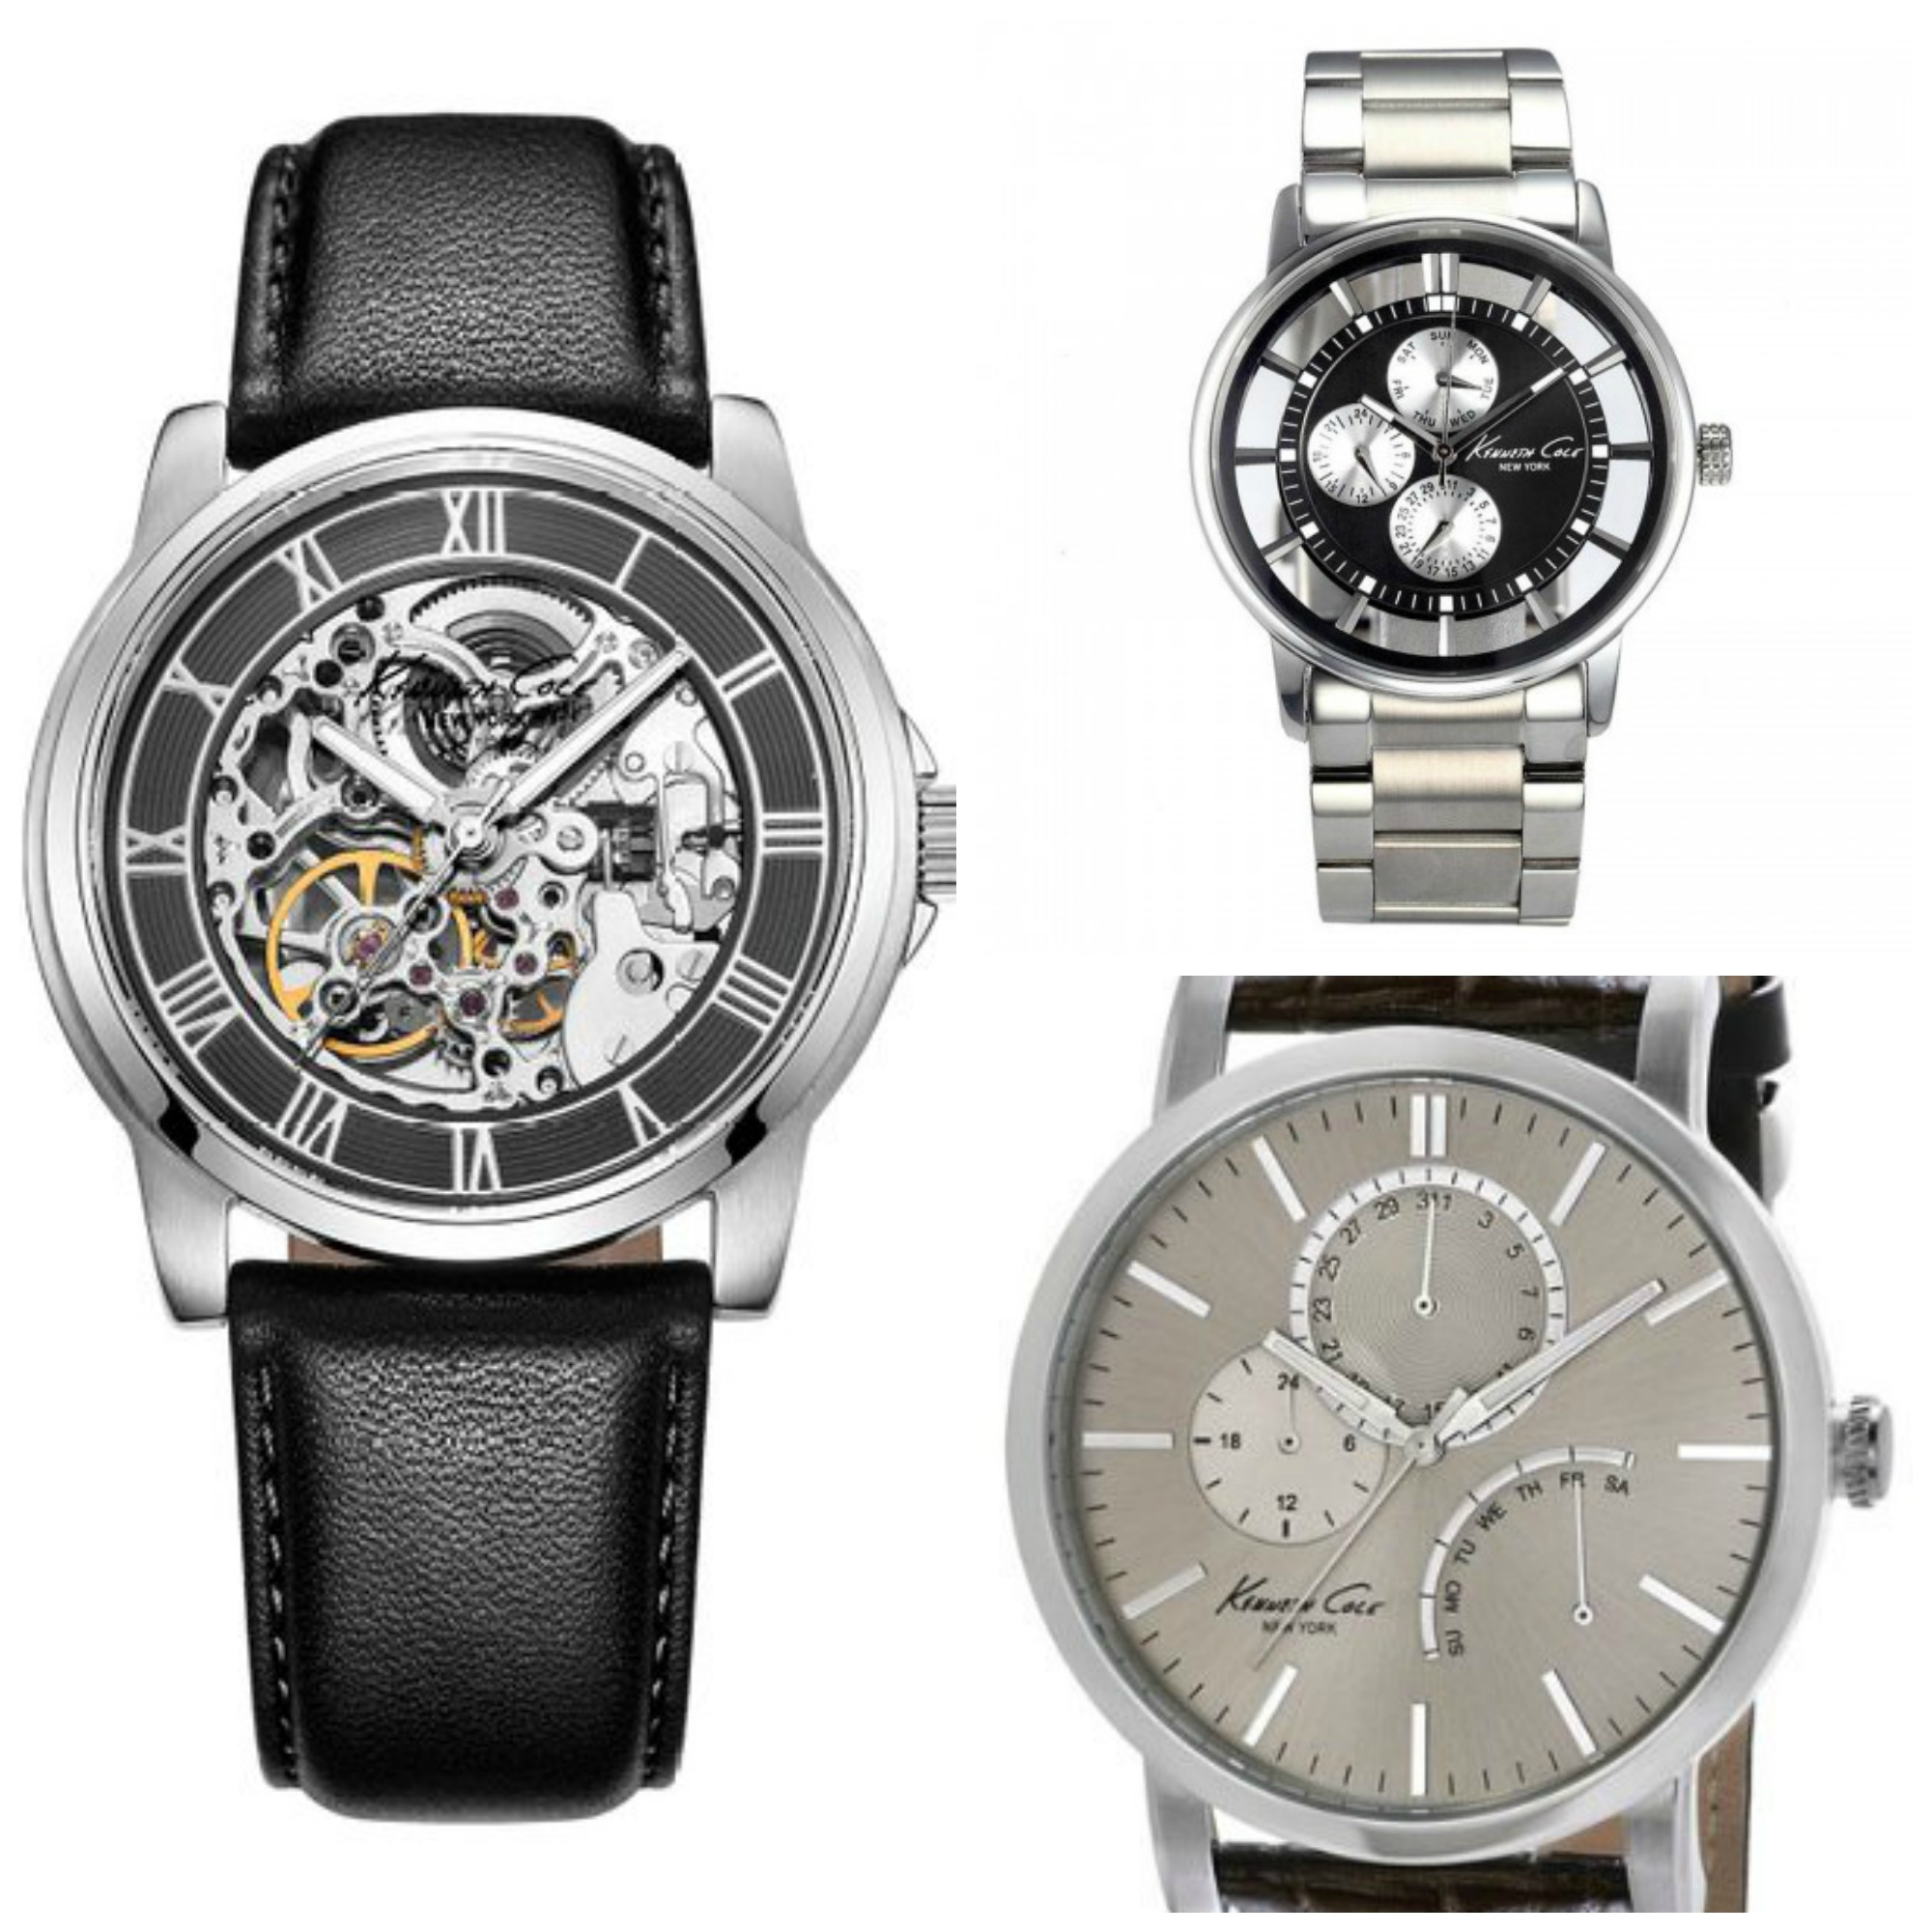 5 Most Popular Best Selling Kenneth Cole Watches For Men ...